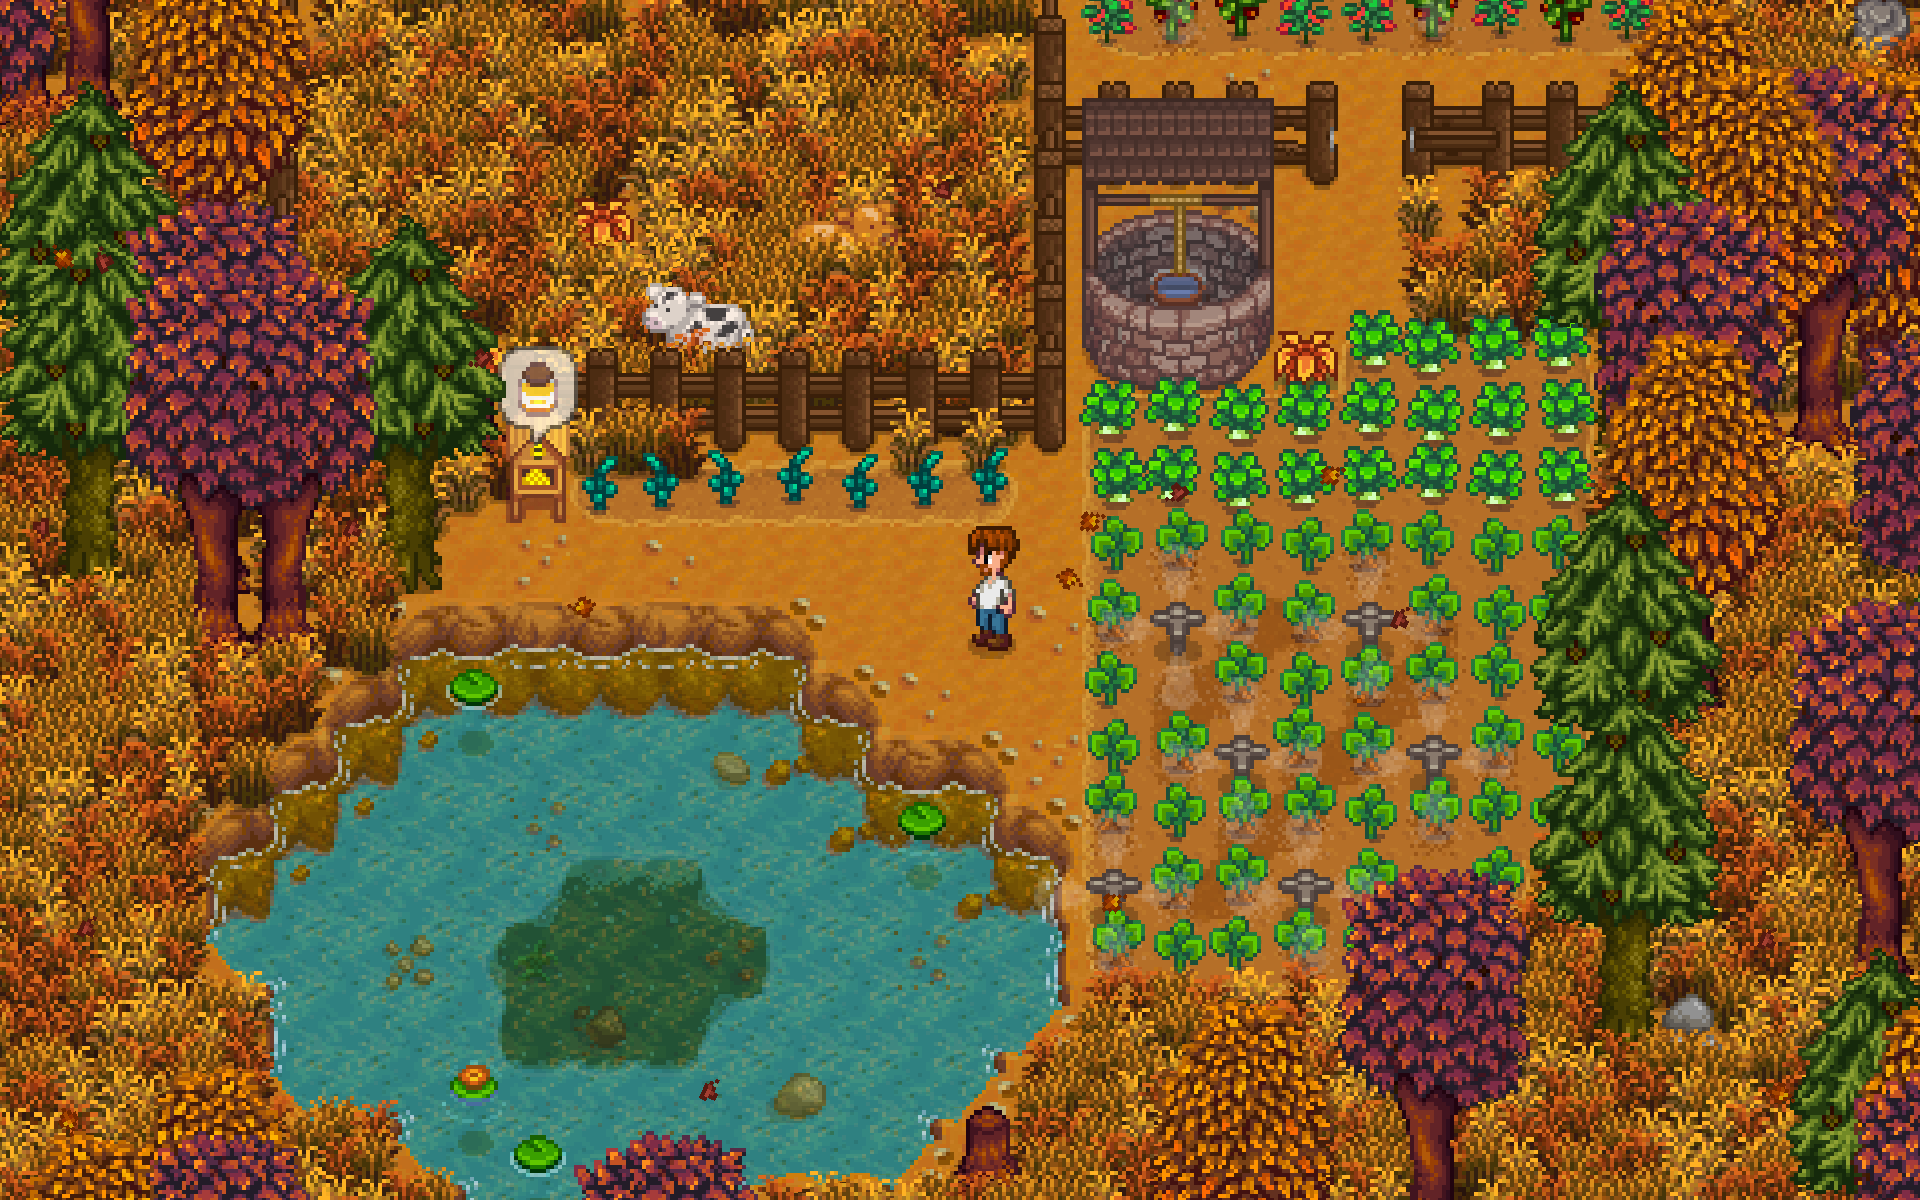 Stardew Valley Dev Update 10